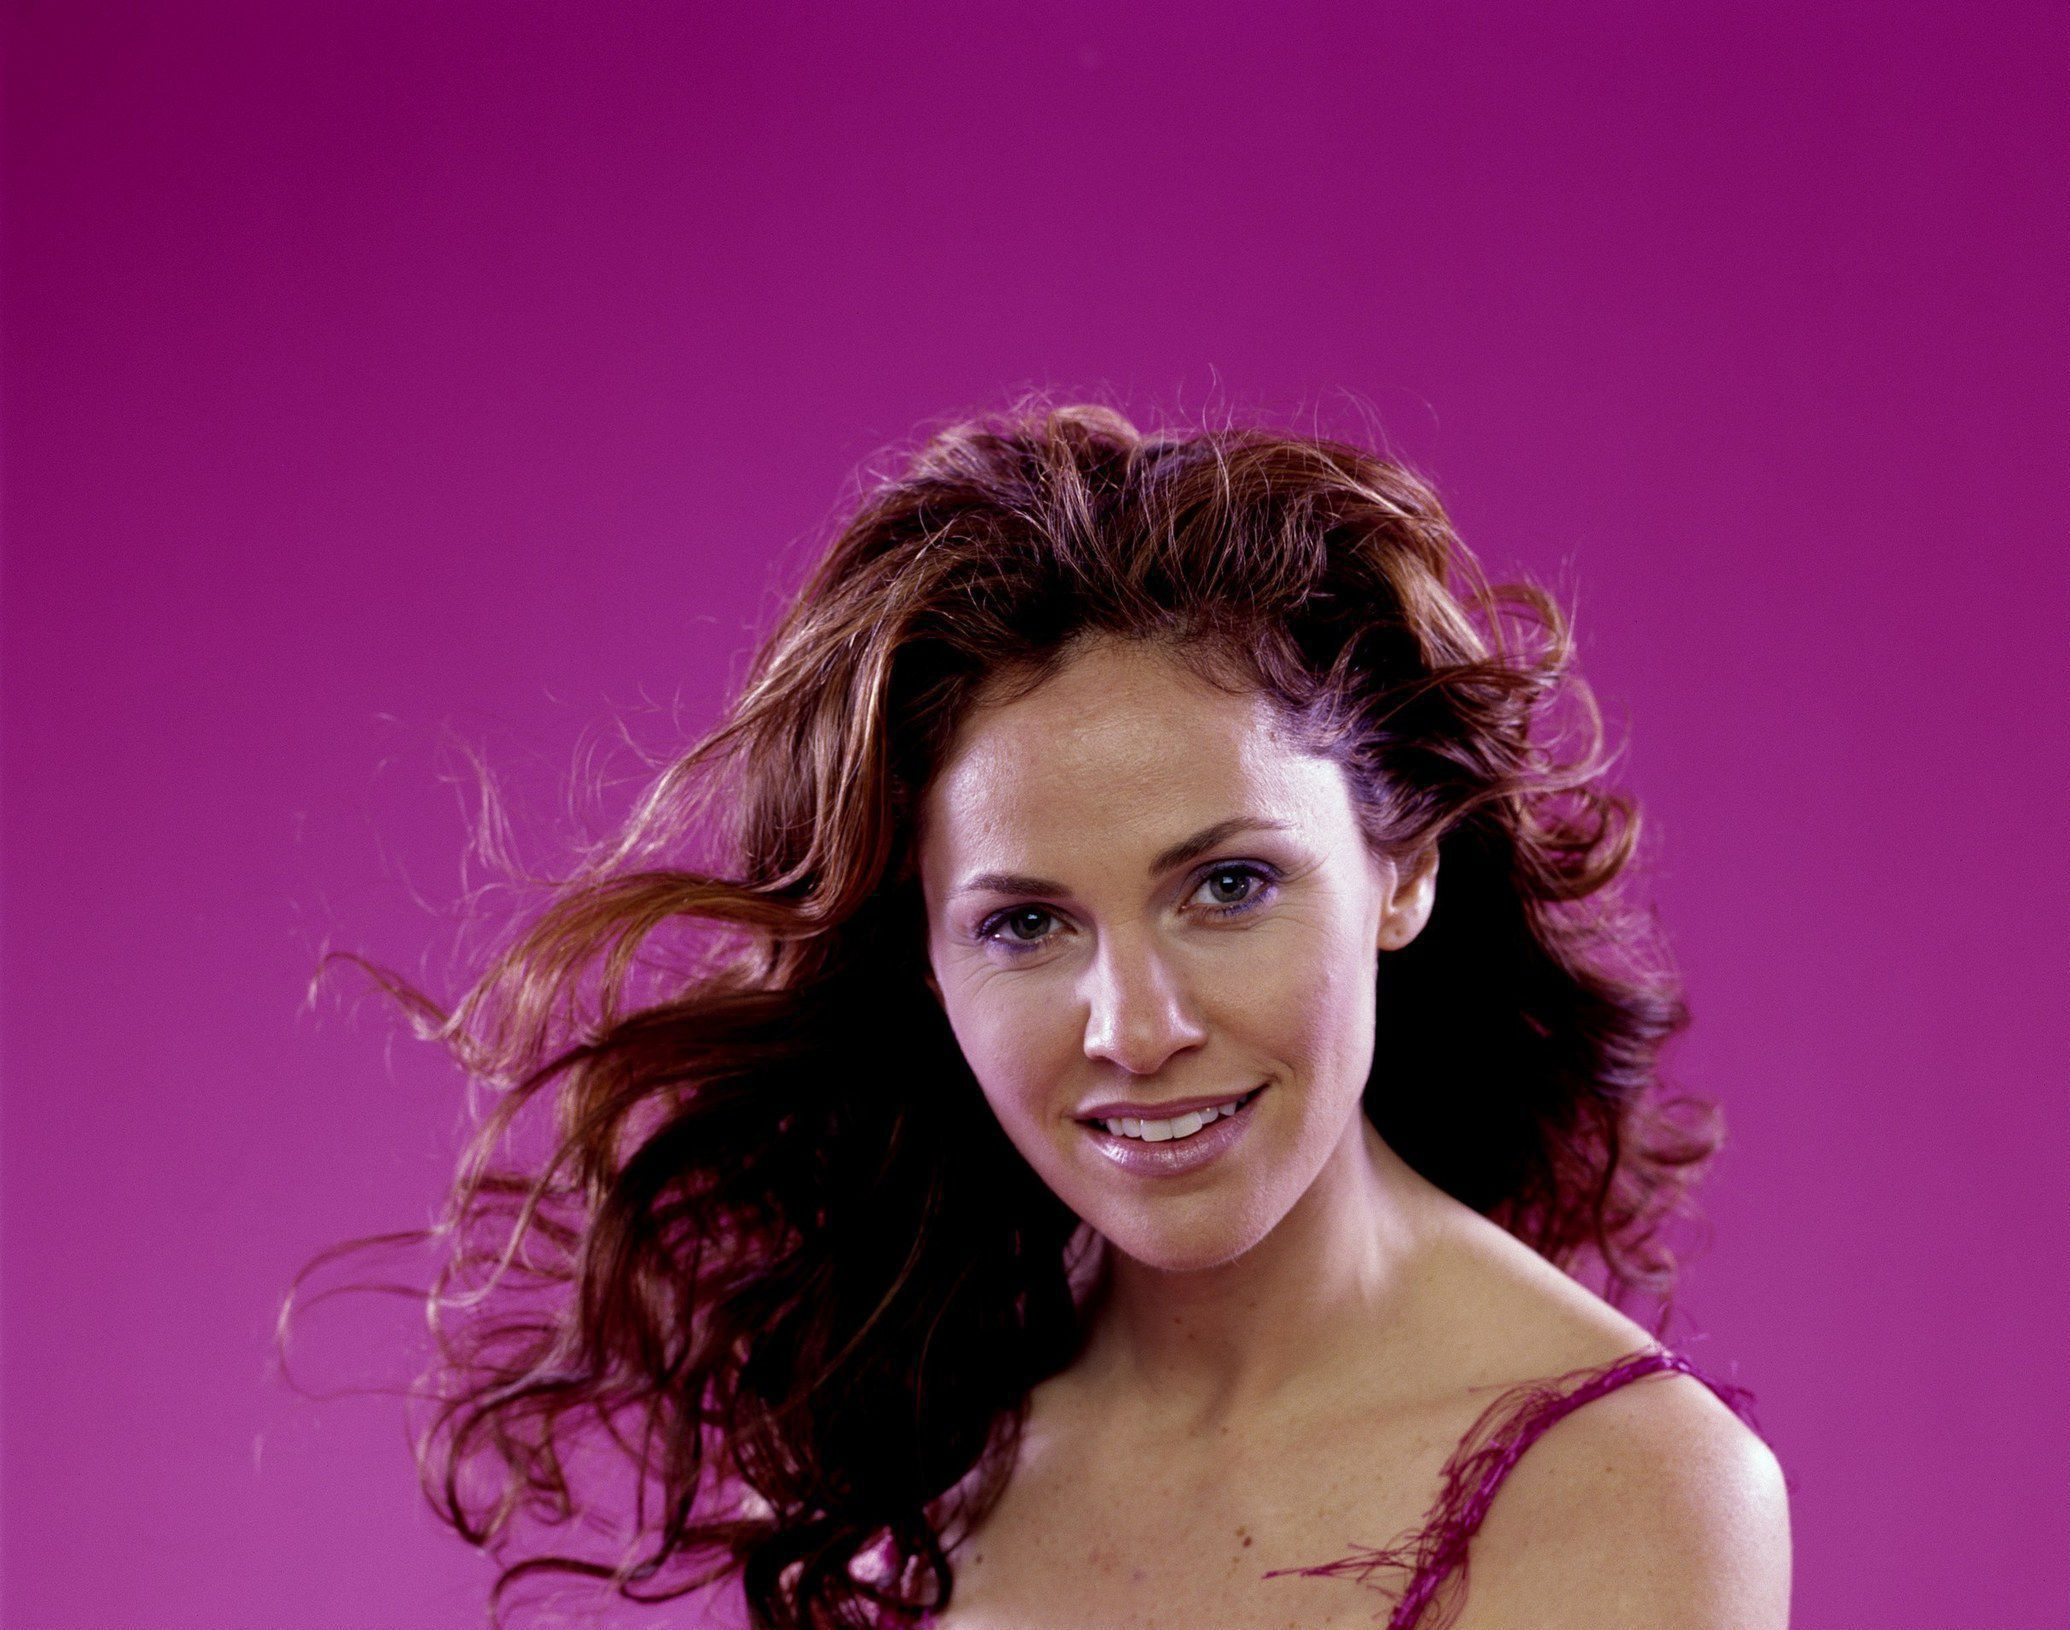 Amy Brenneman Wallpaper Pack